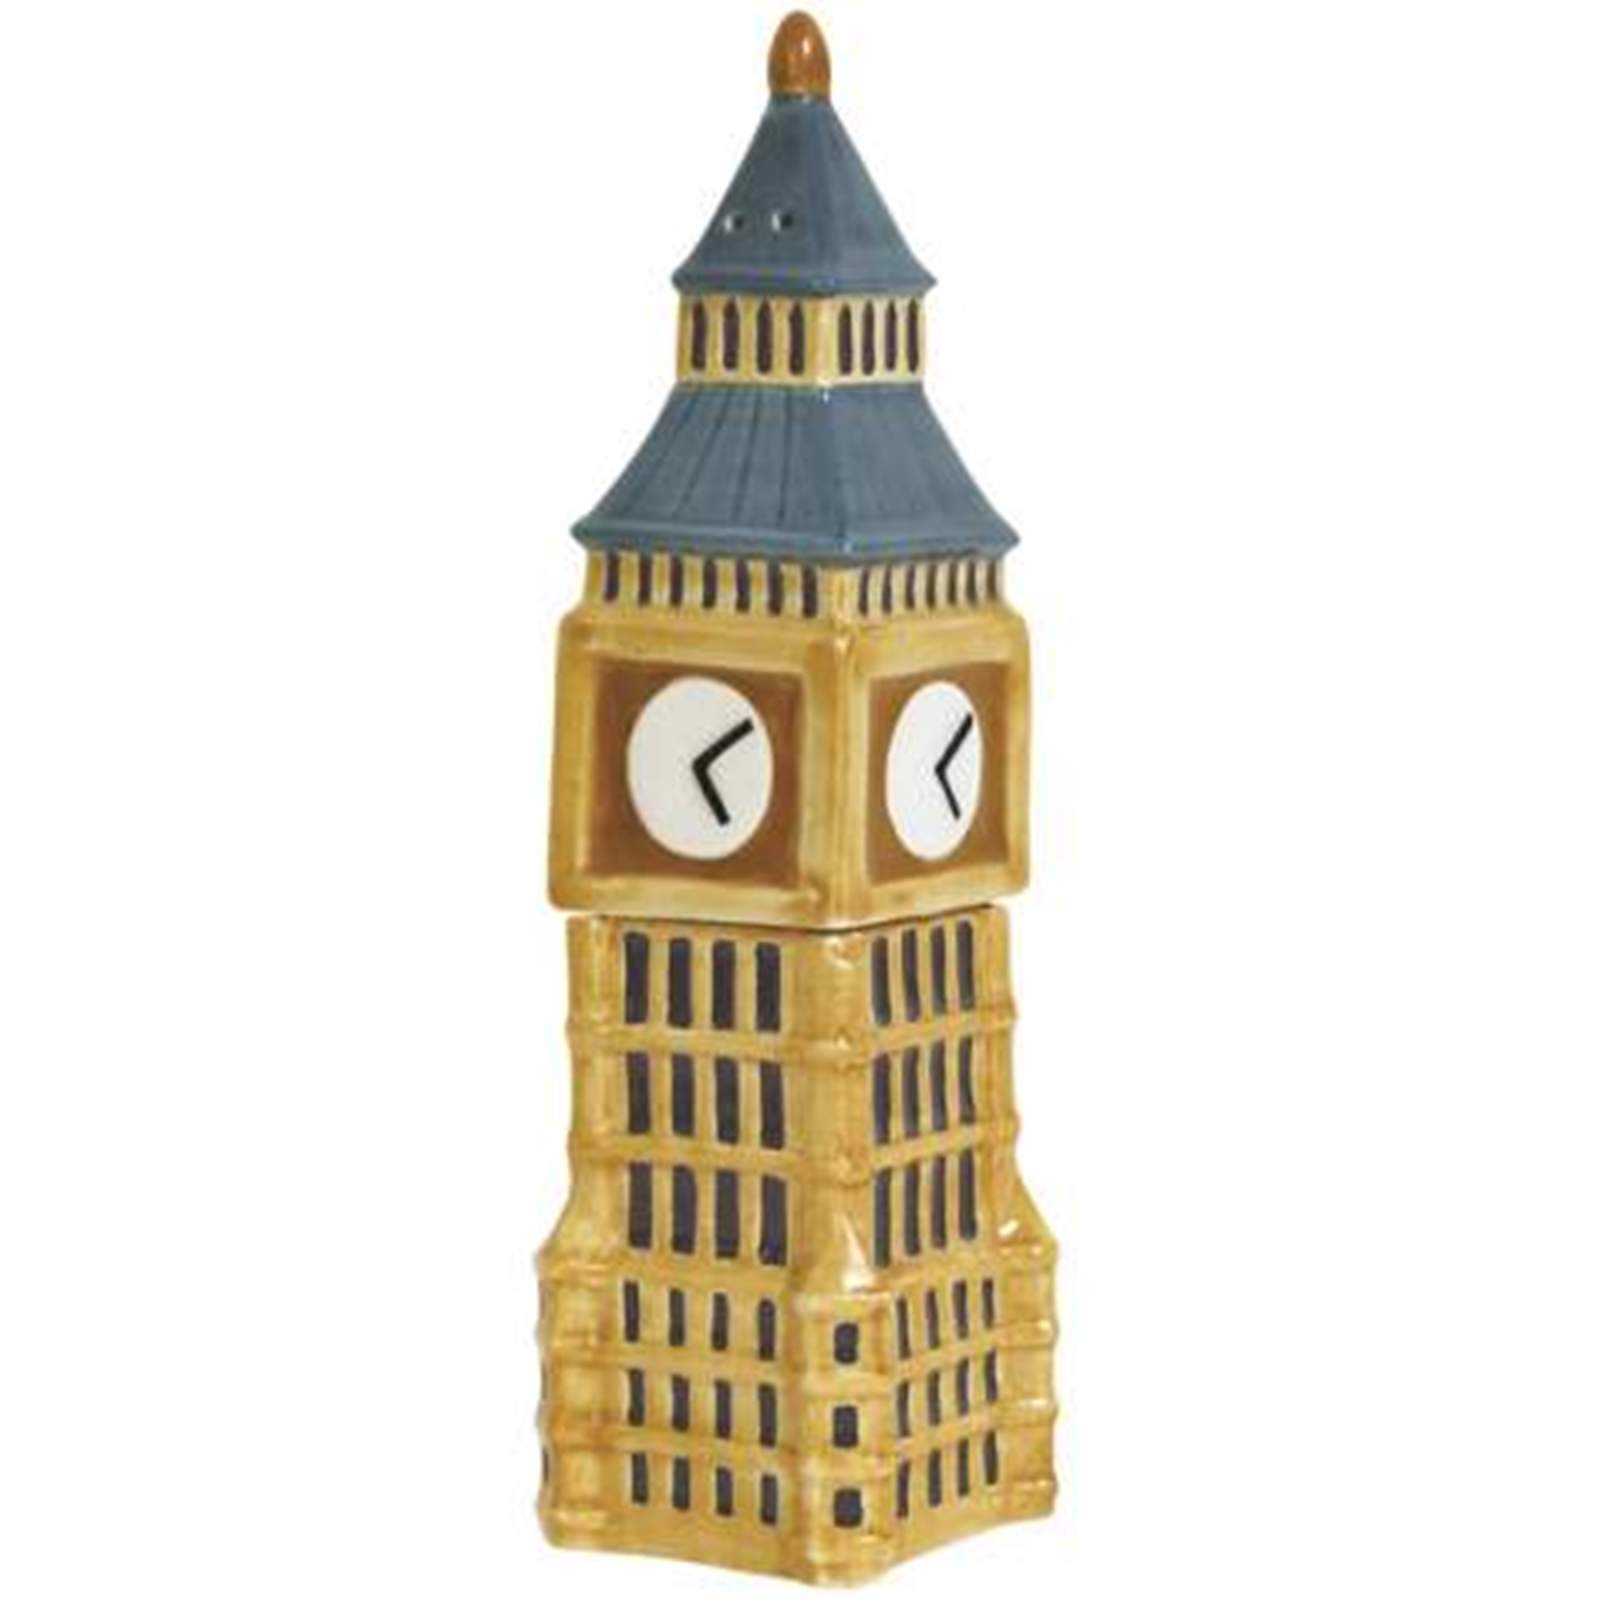 Big Ben Westminster London Clock Tower Salt & Pepper Shakers Westland Giftware